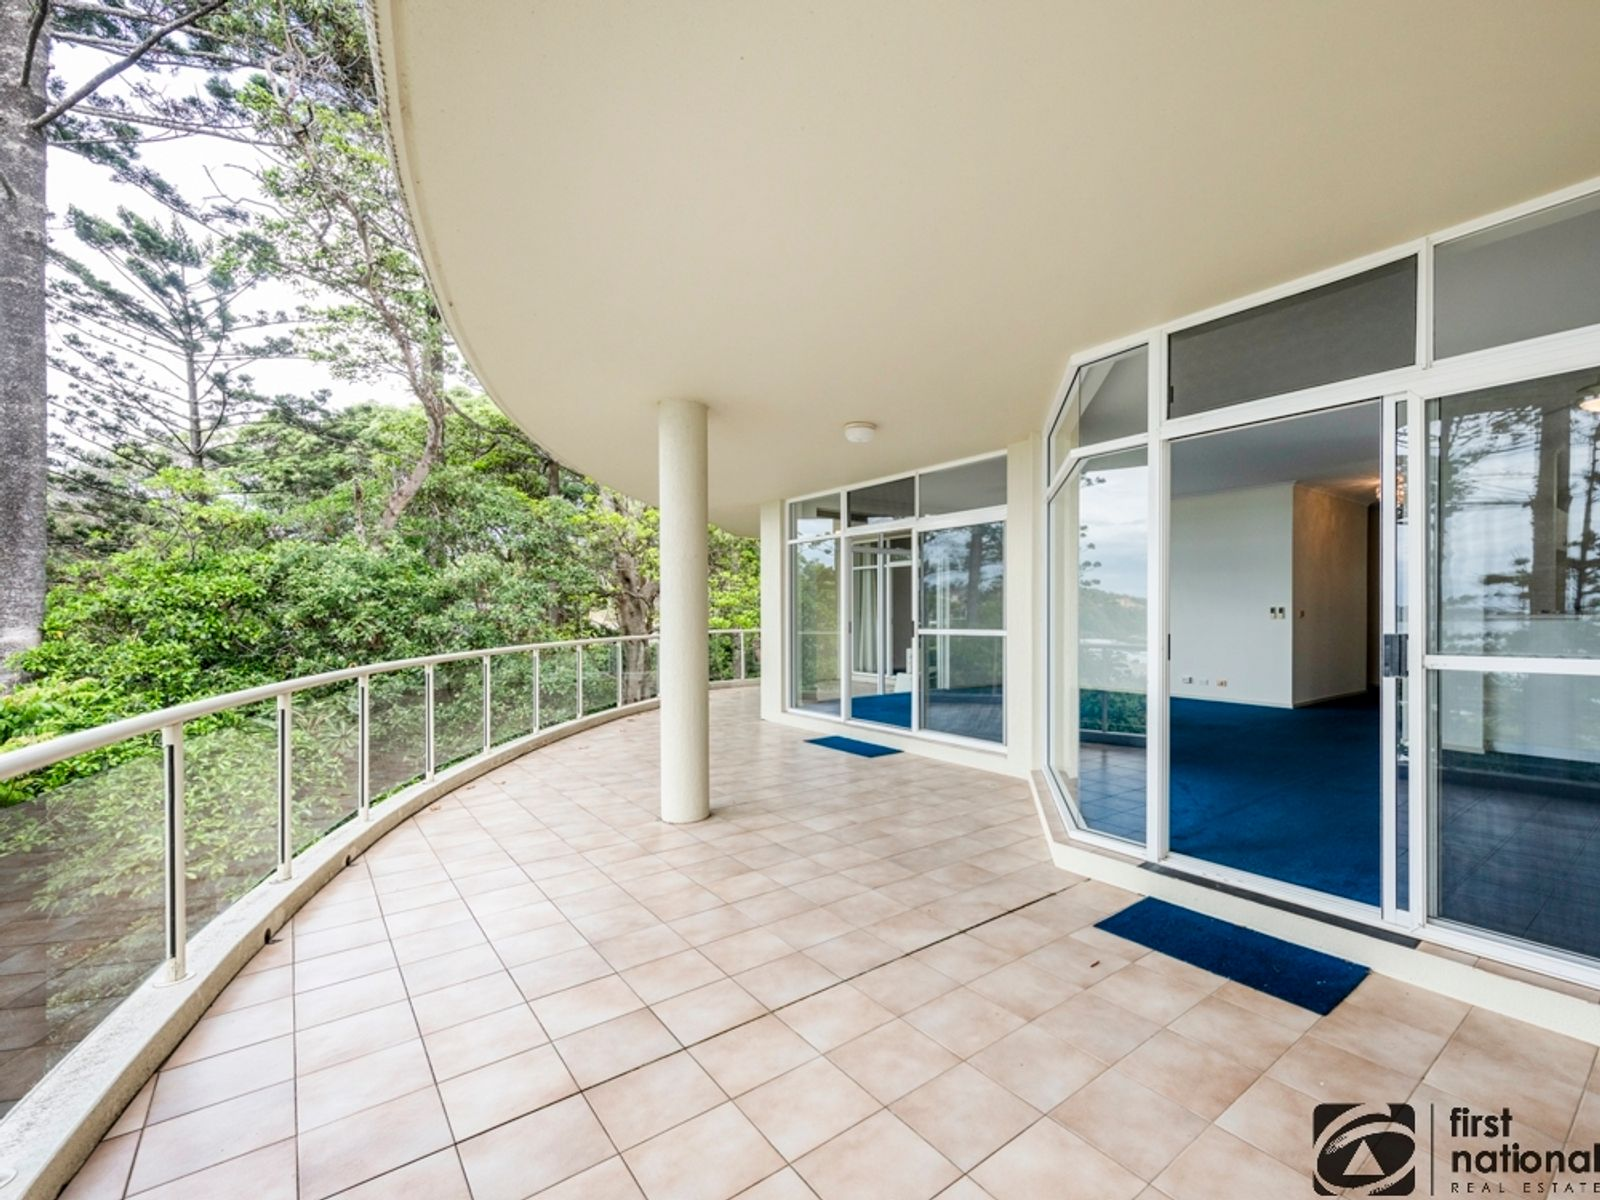 2/40 Solitary Islands Way, Sapphire Beach, NSW 2450